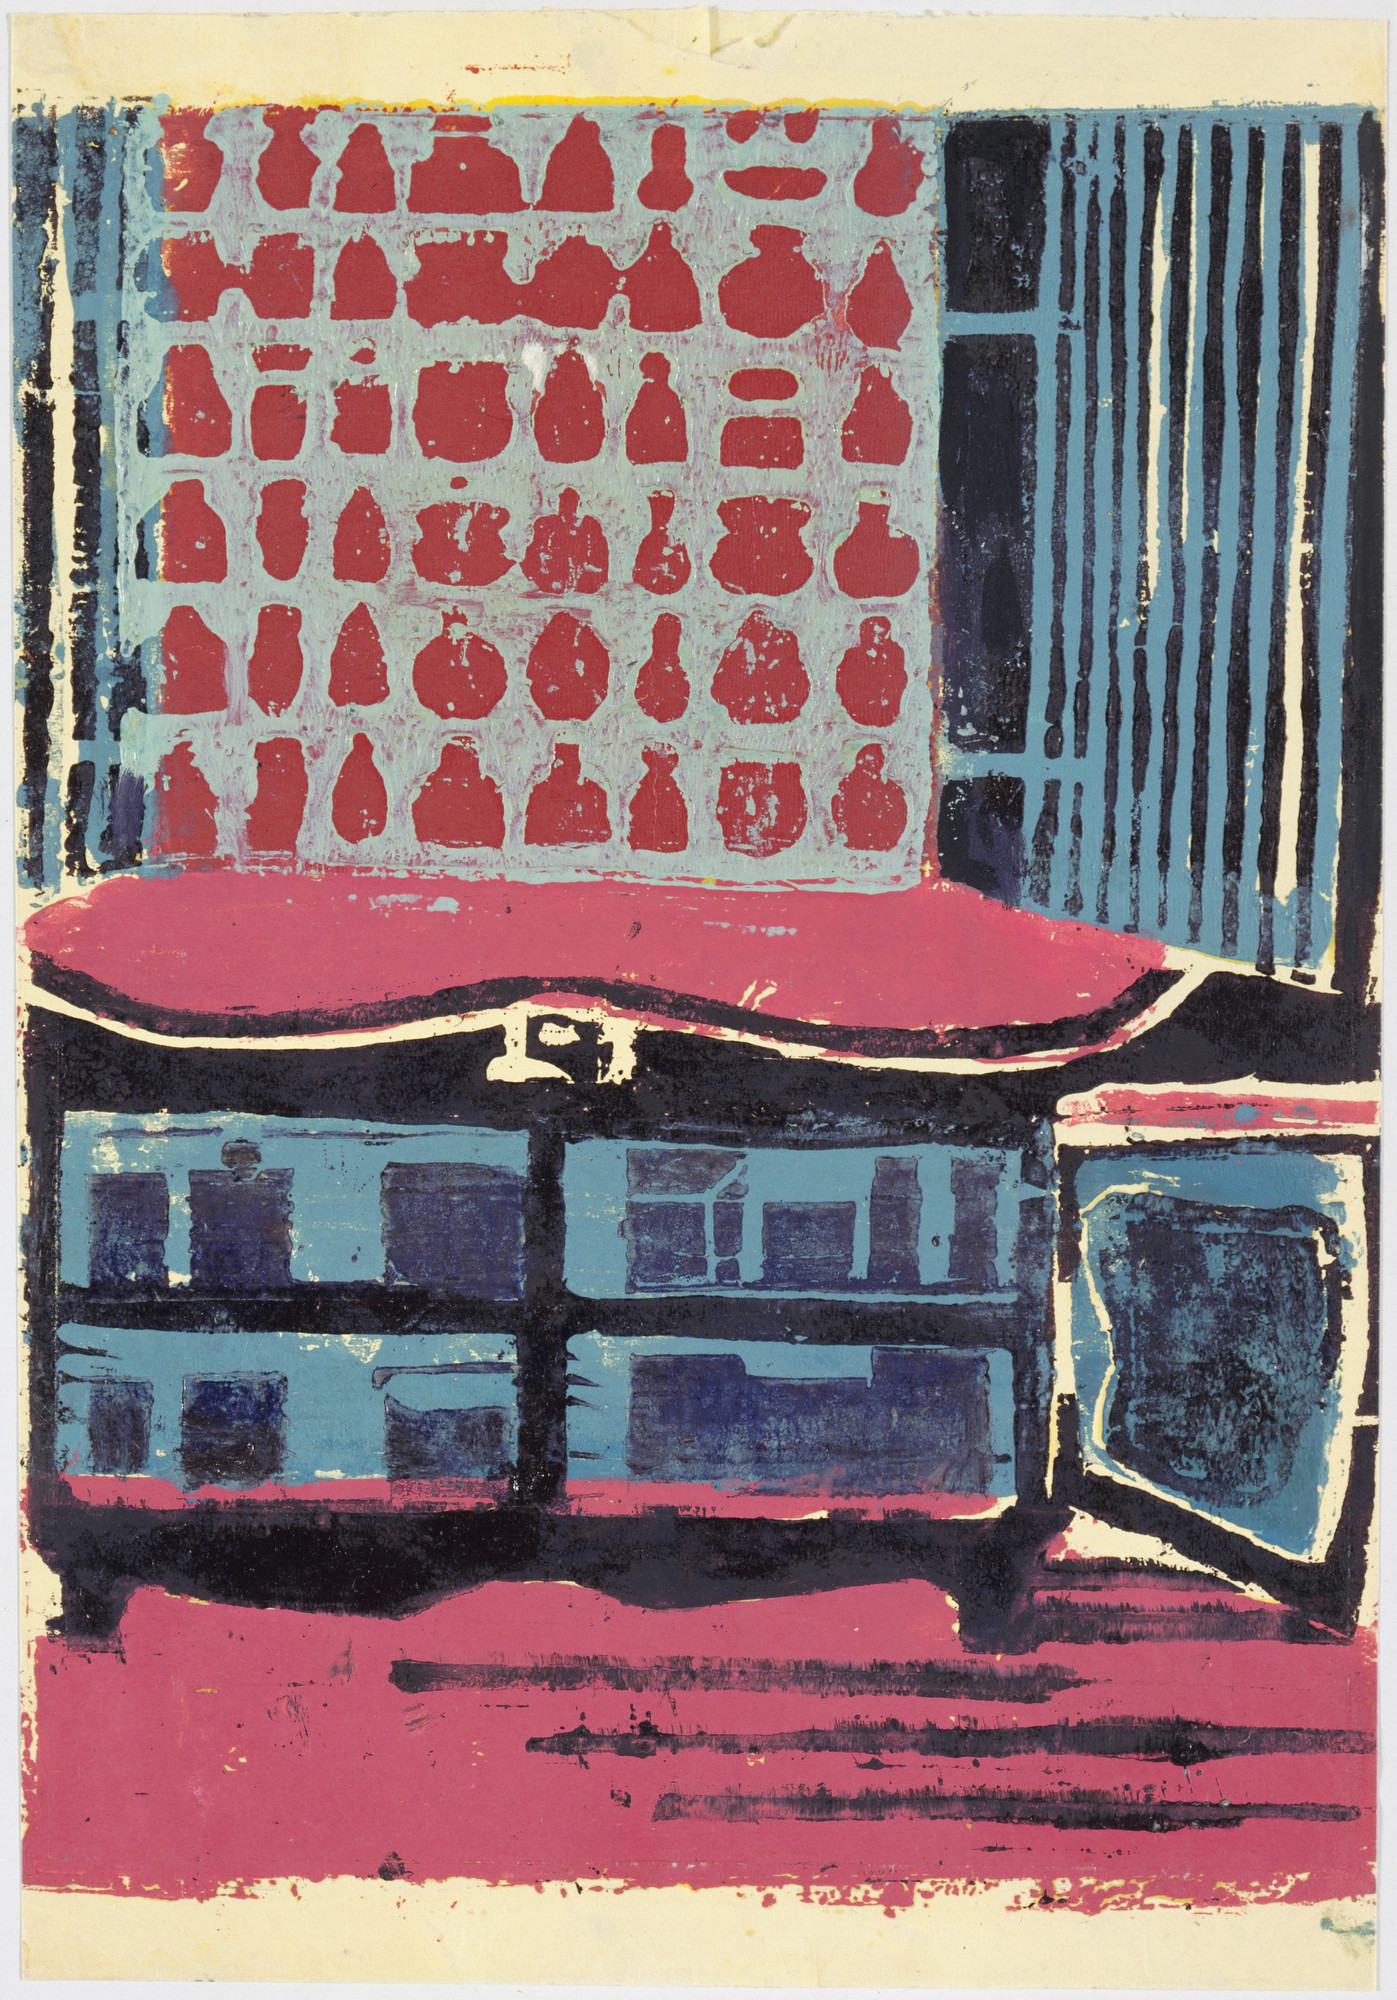 Louise Bourgeois. During the War: Shortage of Food in Easton. 1942-1944